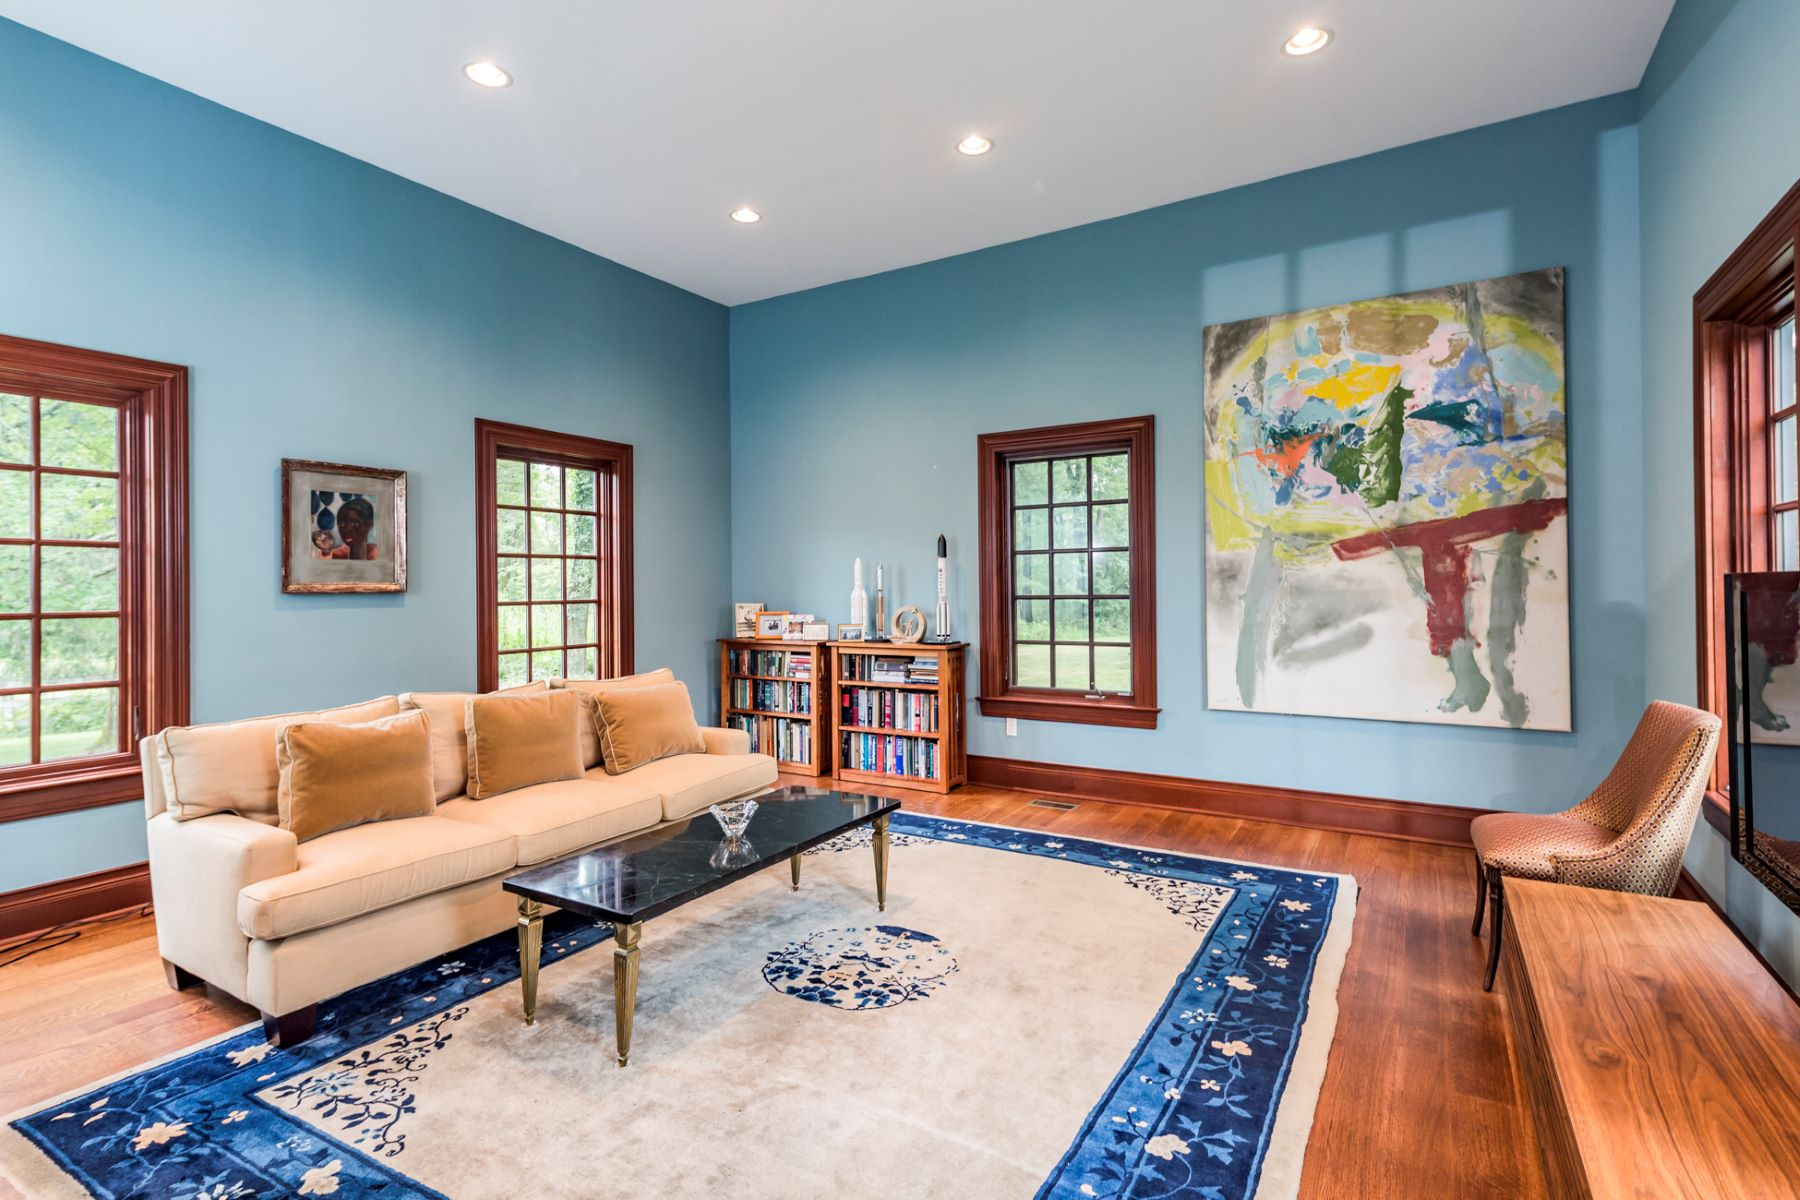 Additional photo for property listing at A Modern & Luxuriant Take on the Classic Home 419 Great Road, Princeton, New Jersey 08540 Vereinigte Staaten